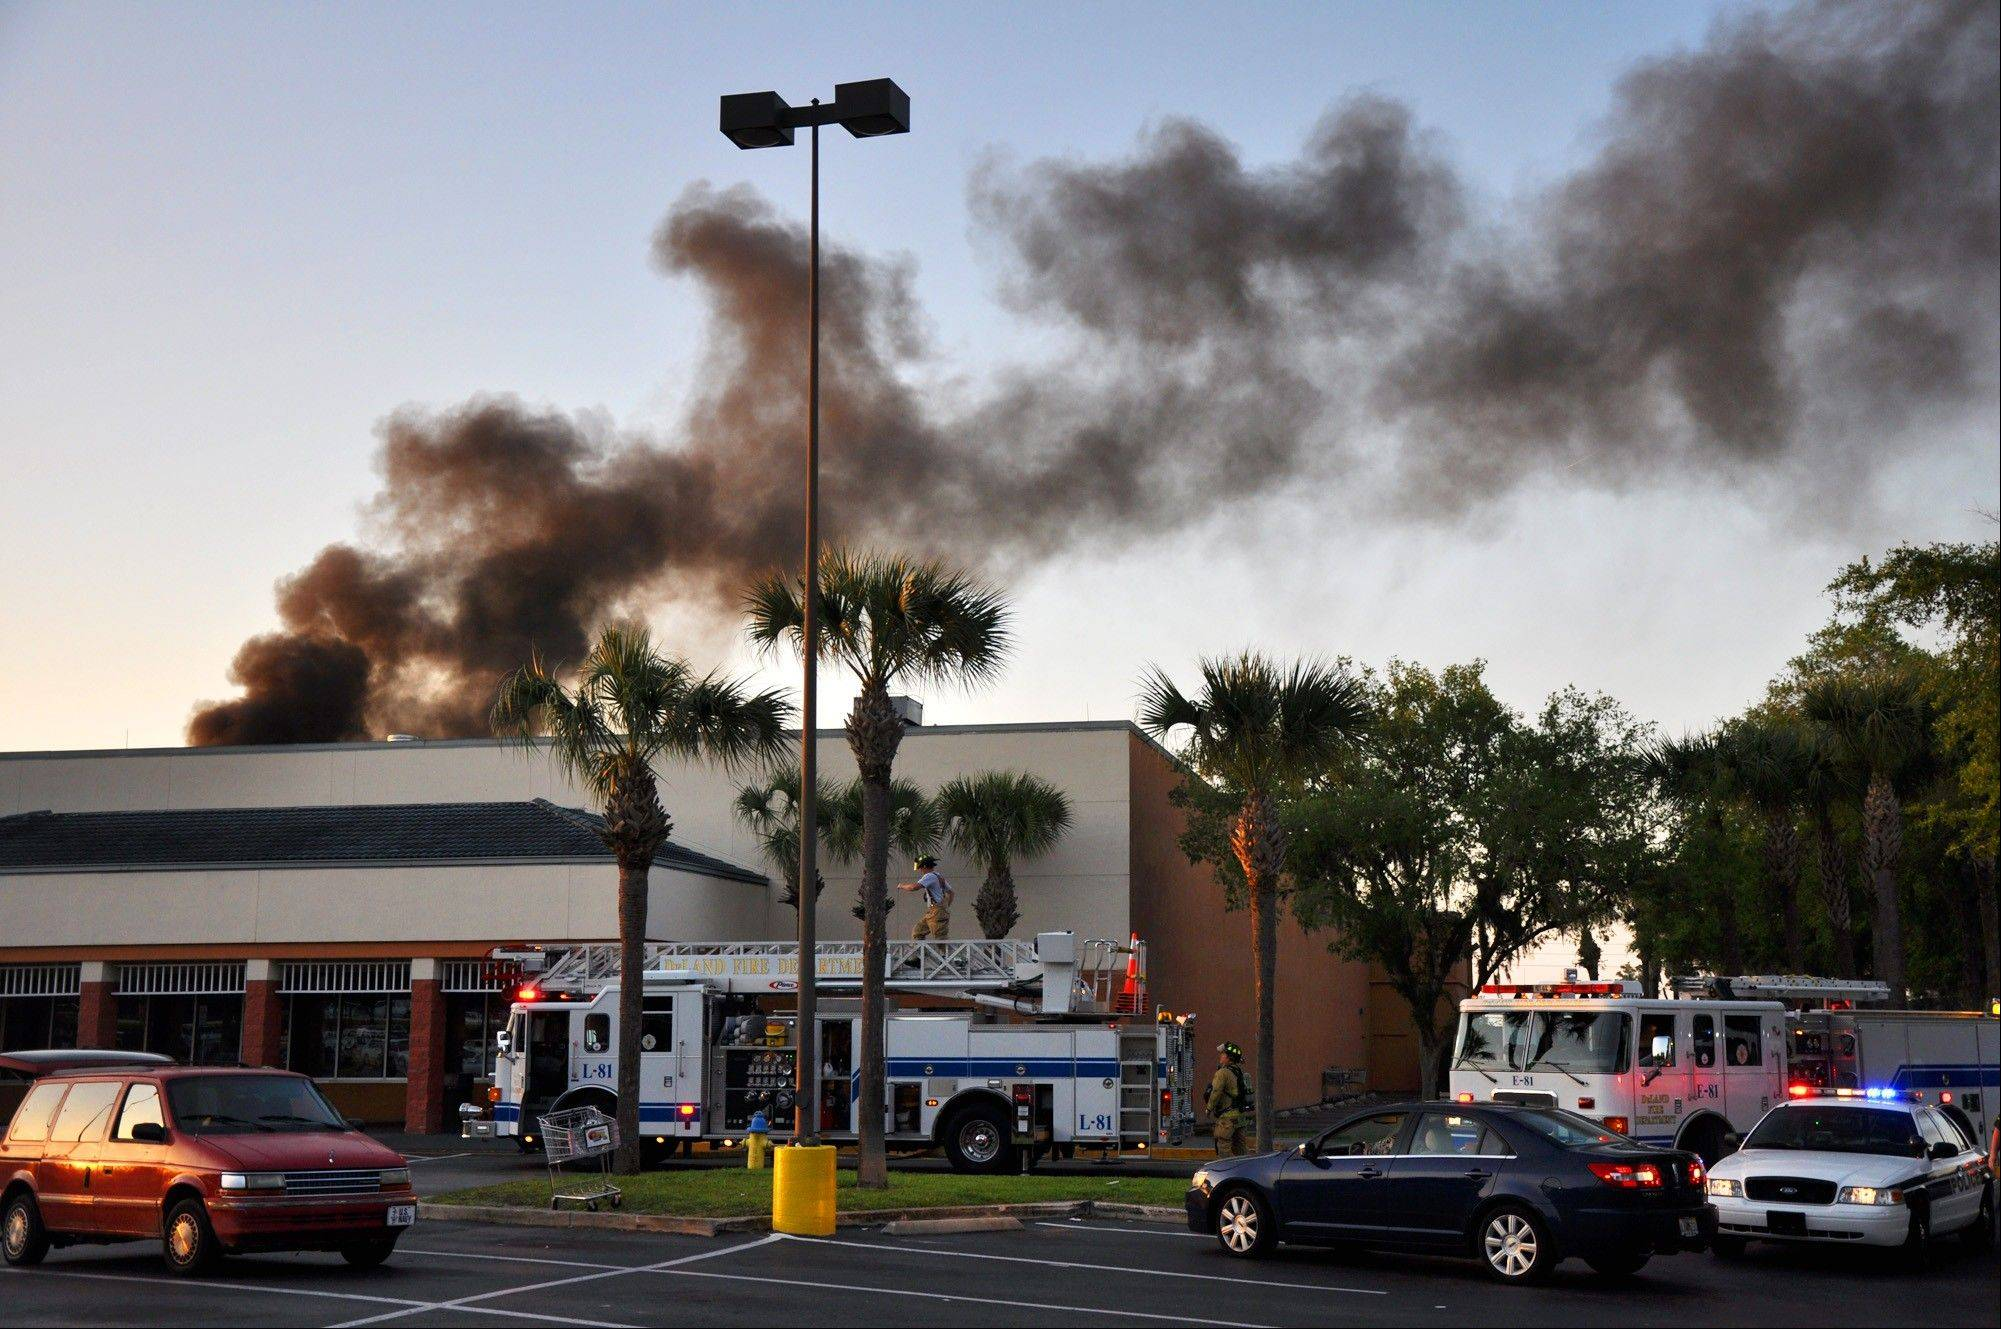 First responders from DeLand Fire Department, Volusia County Fire Services, EVAC and DeLand Police Department work the scene of a small plane crash at the Publix Supermarket on East International Speedway Boulevard, in DeLand, Fla., on April 2, 2012. The small plane sputtered and crashed in flames into the Florida shopping center, injuring at least five people as frightened shoppers rushed from the building, authorities and reports said.